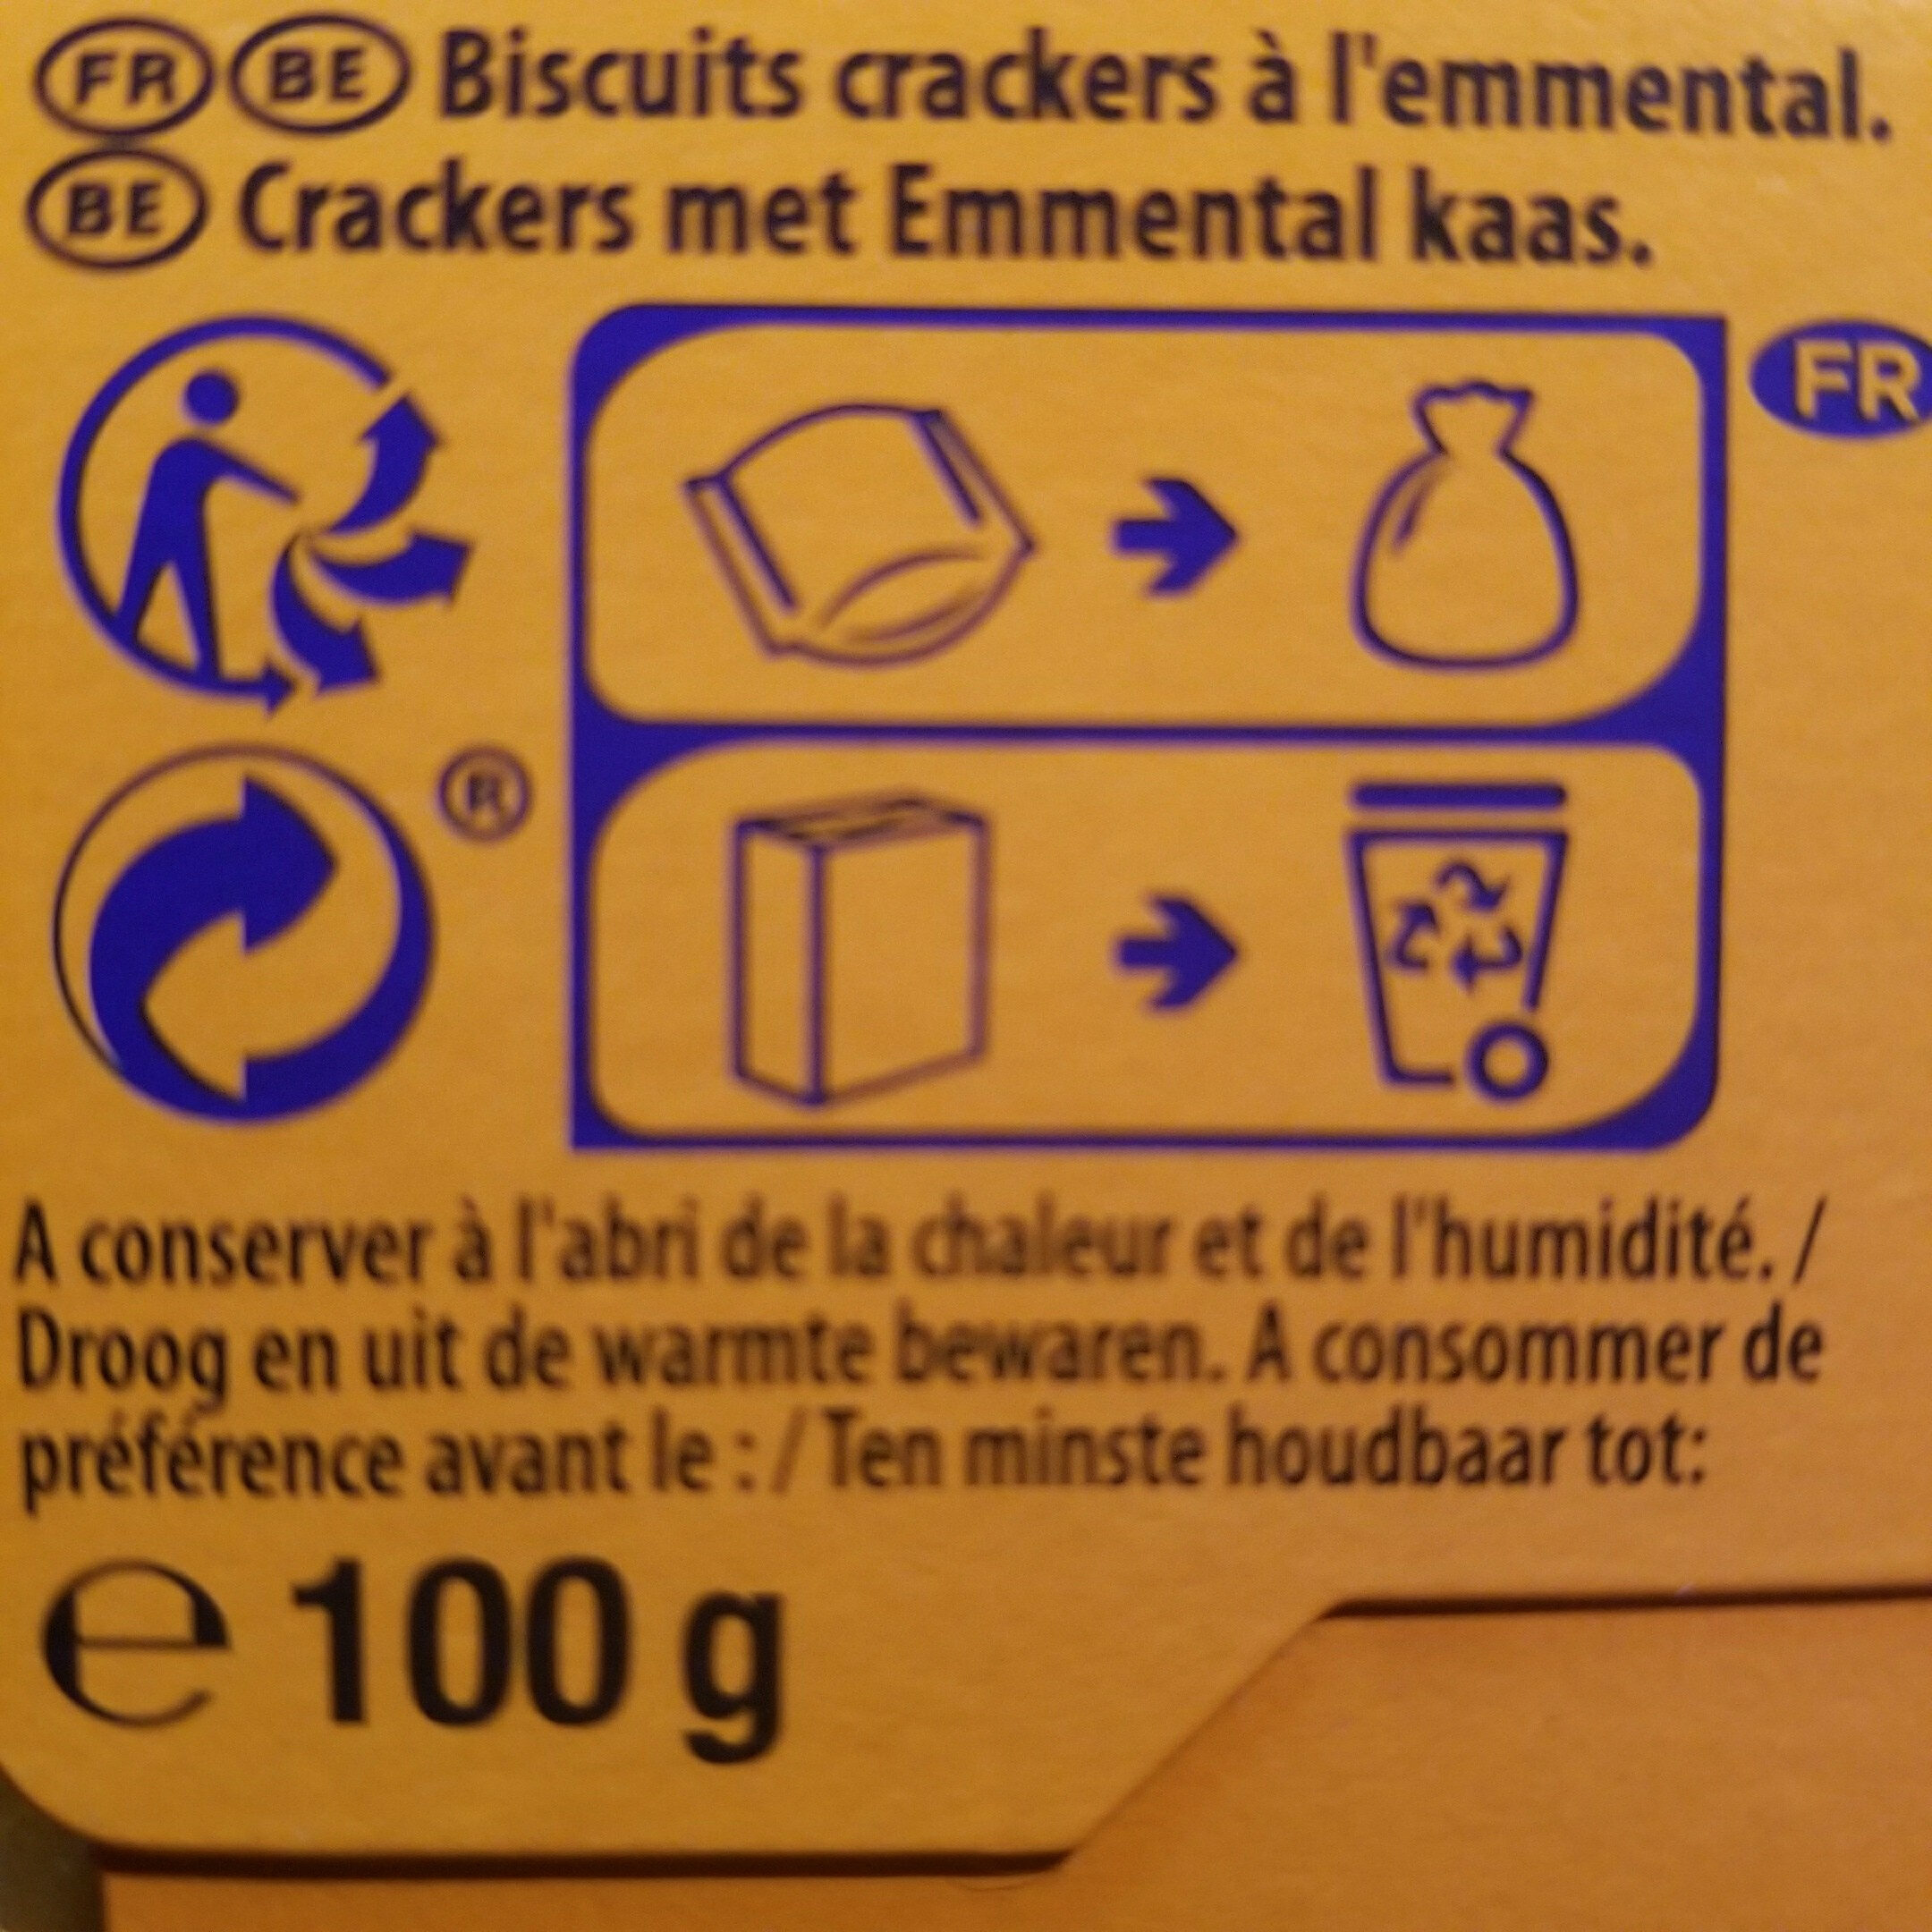 Monaco - Instruction de recyclage et/ou informations d'emballage - fr